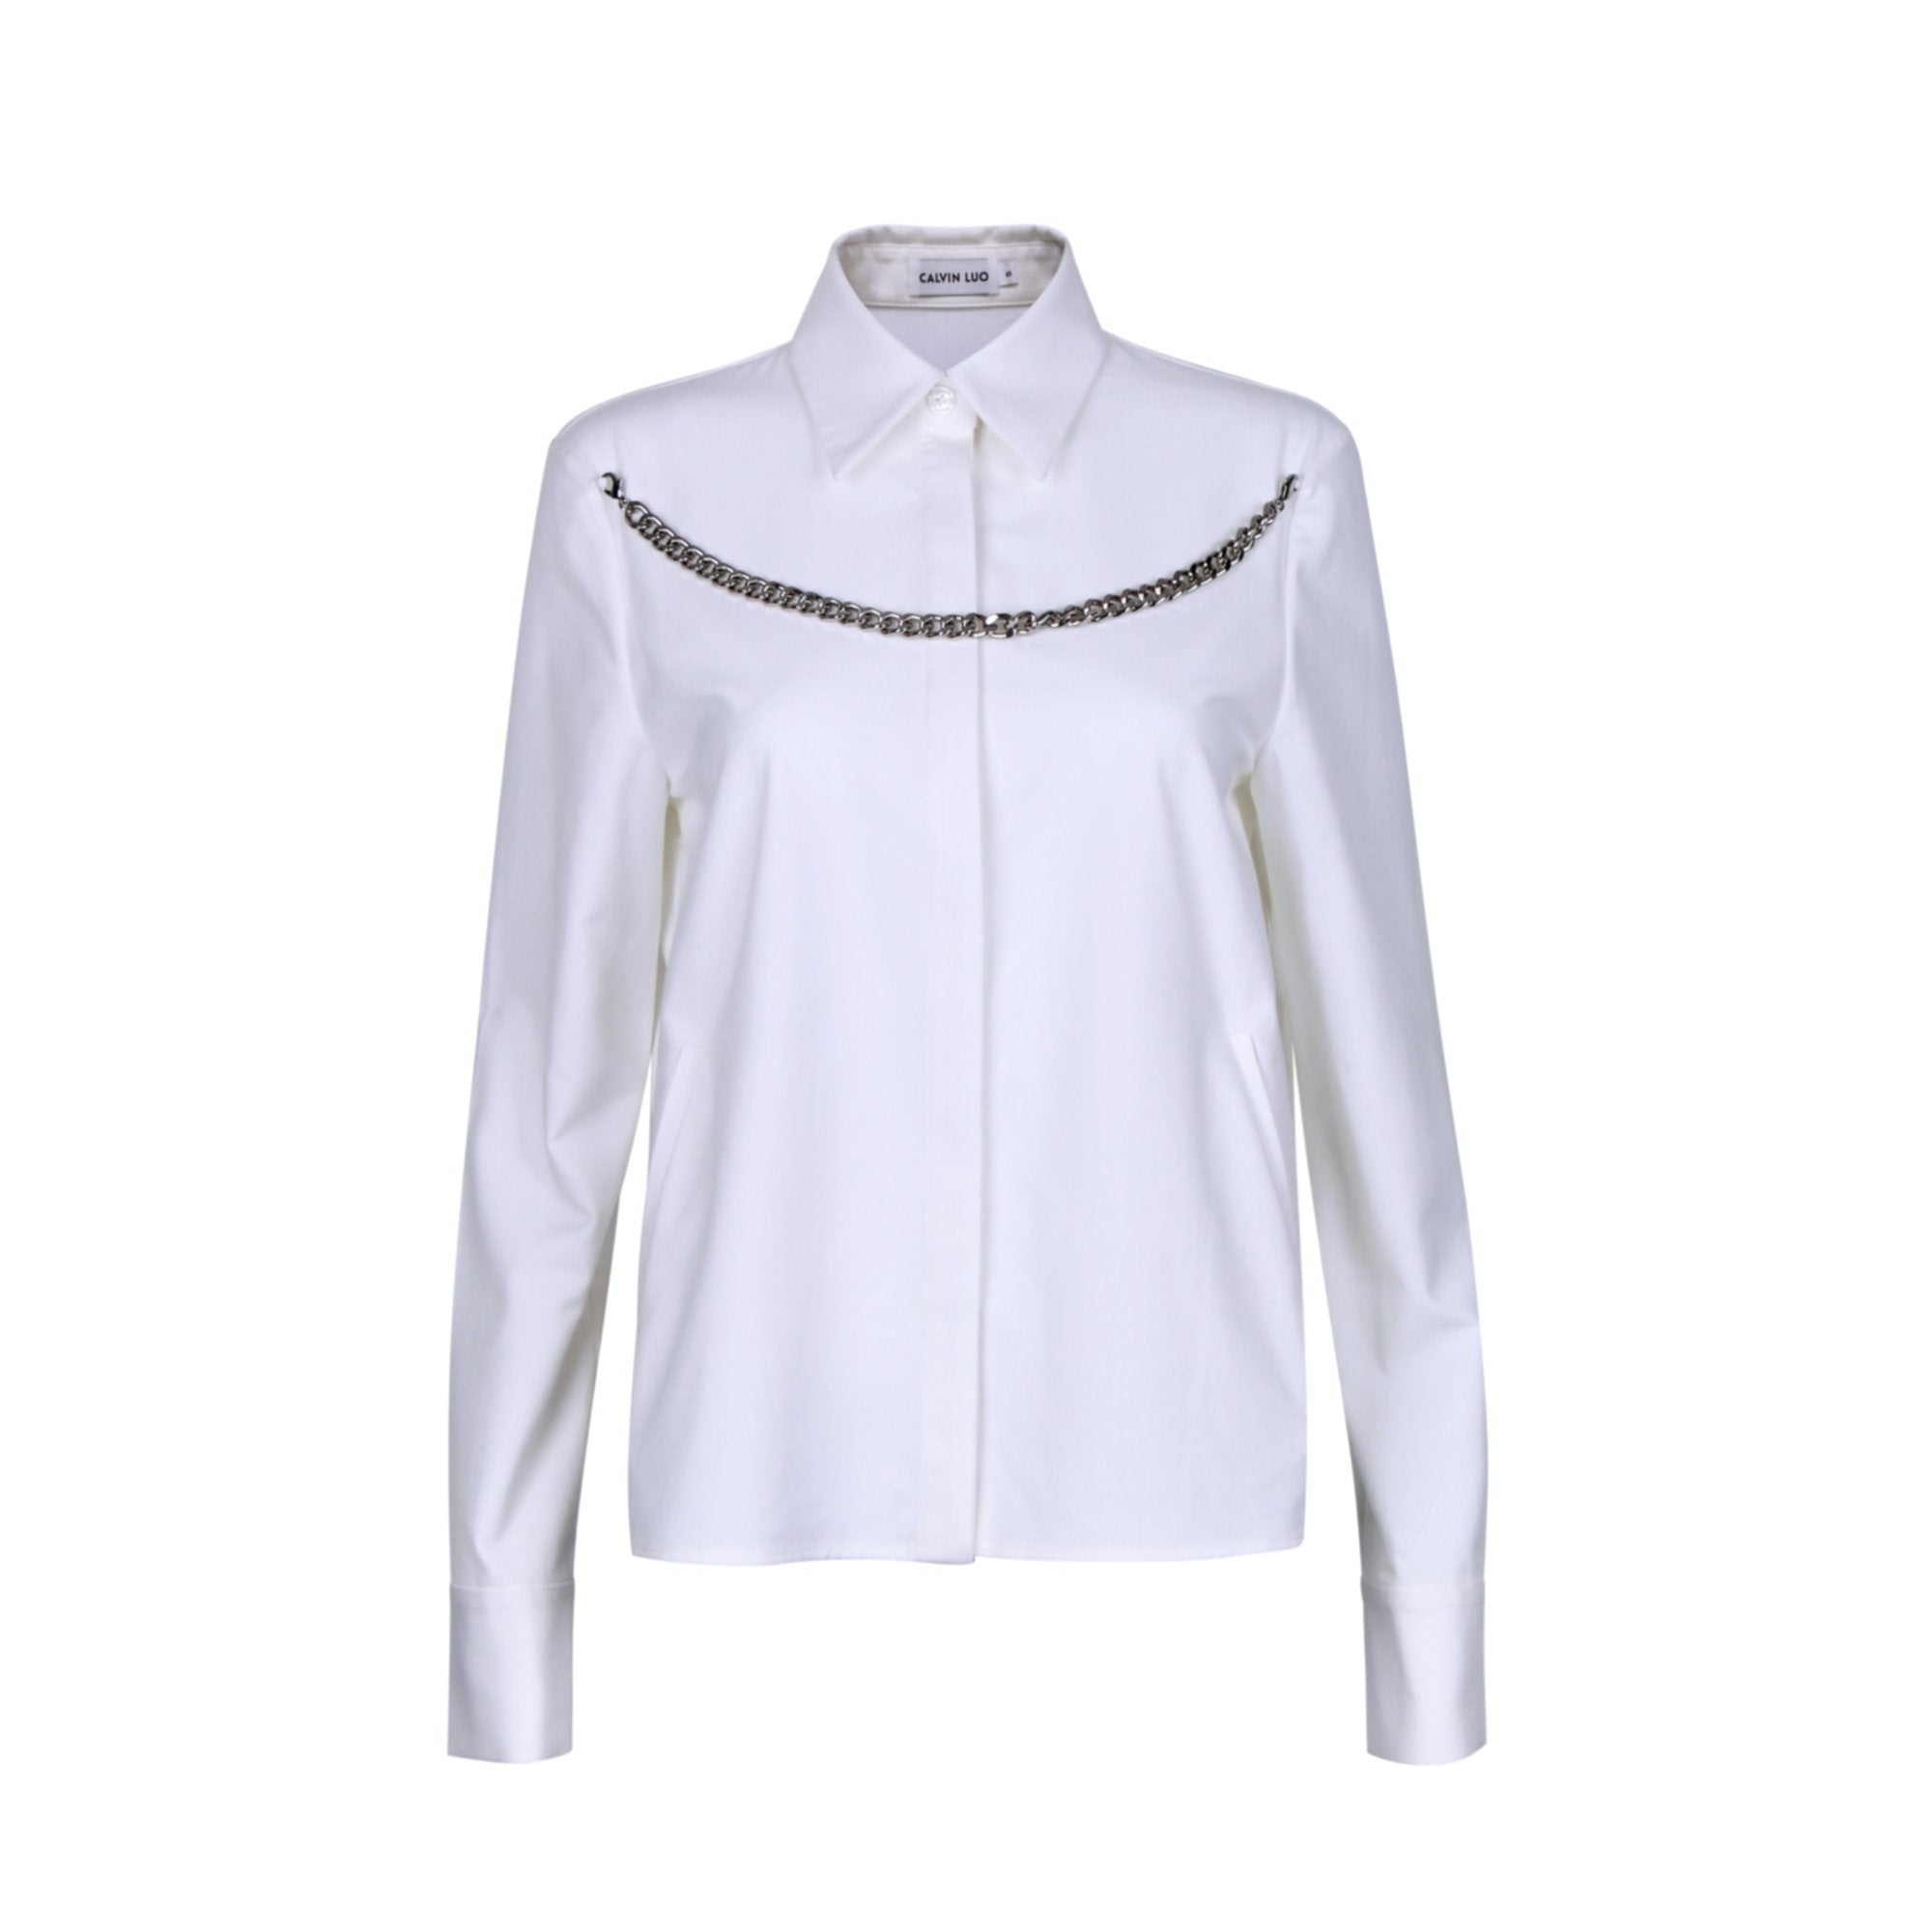 CALVIN LUO White Metal Chain Shirt | MADA IN CHINA